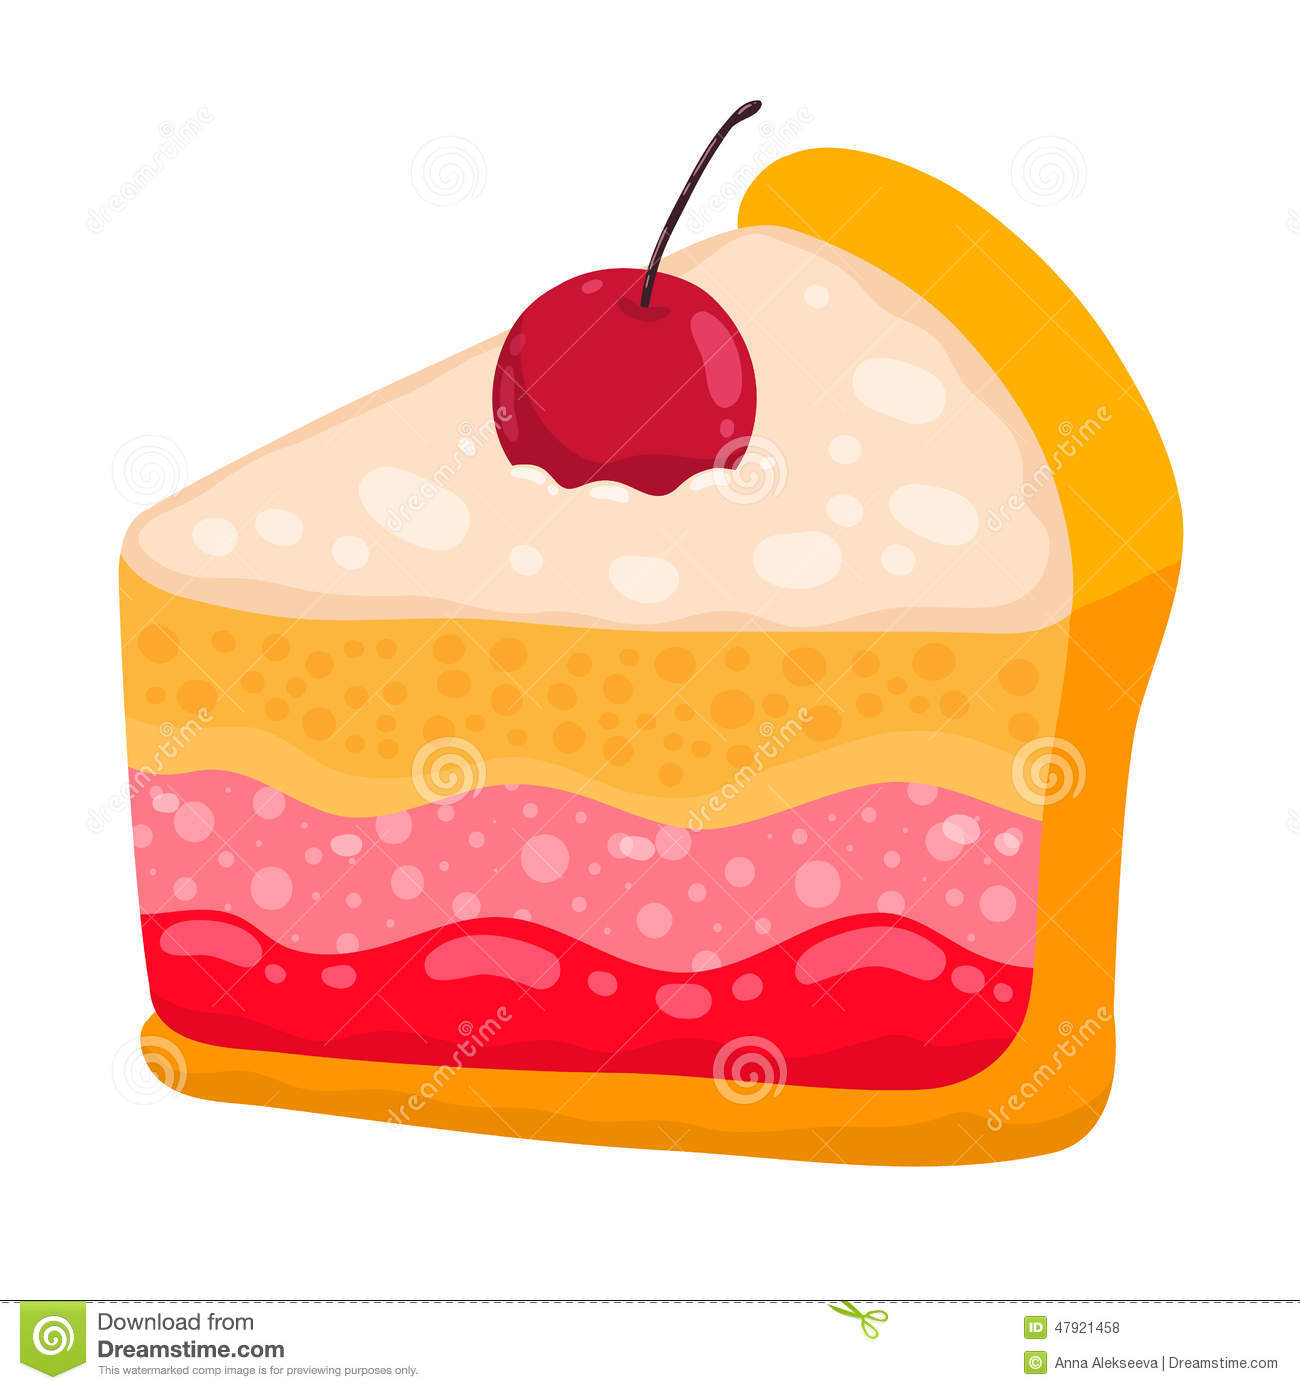 Cute Cartoon Vector Cake Piece Stock Vector - Image: 47921458